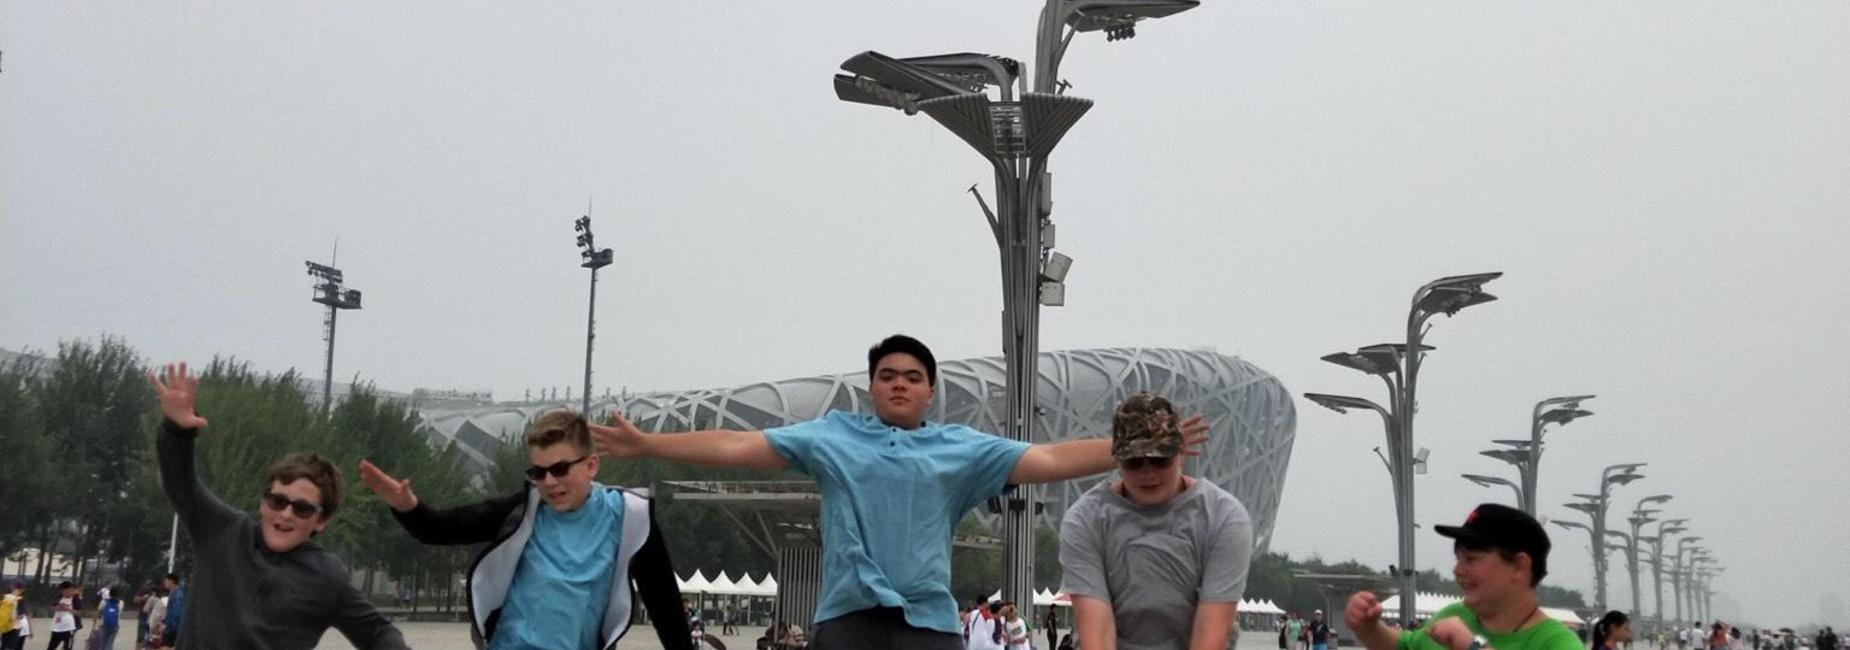 Boys jumping in China